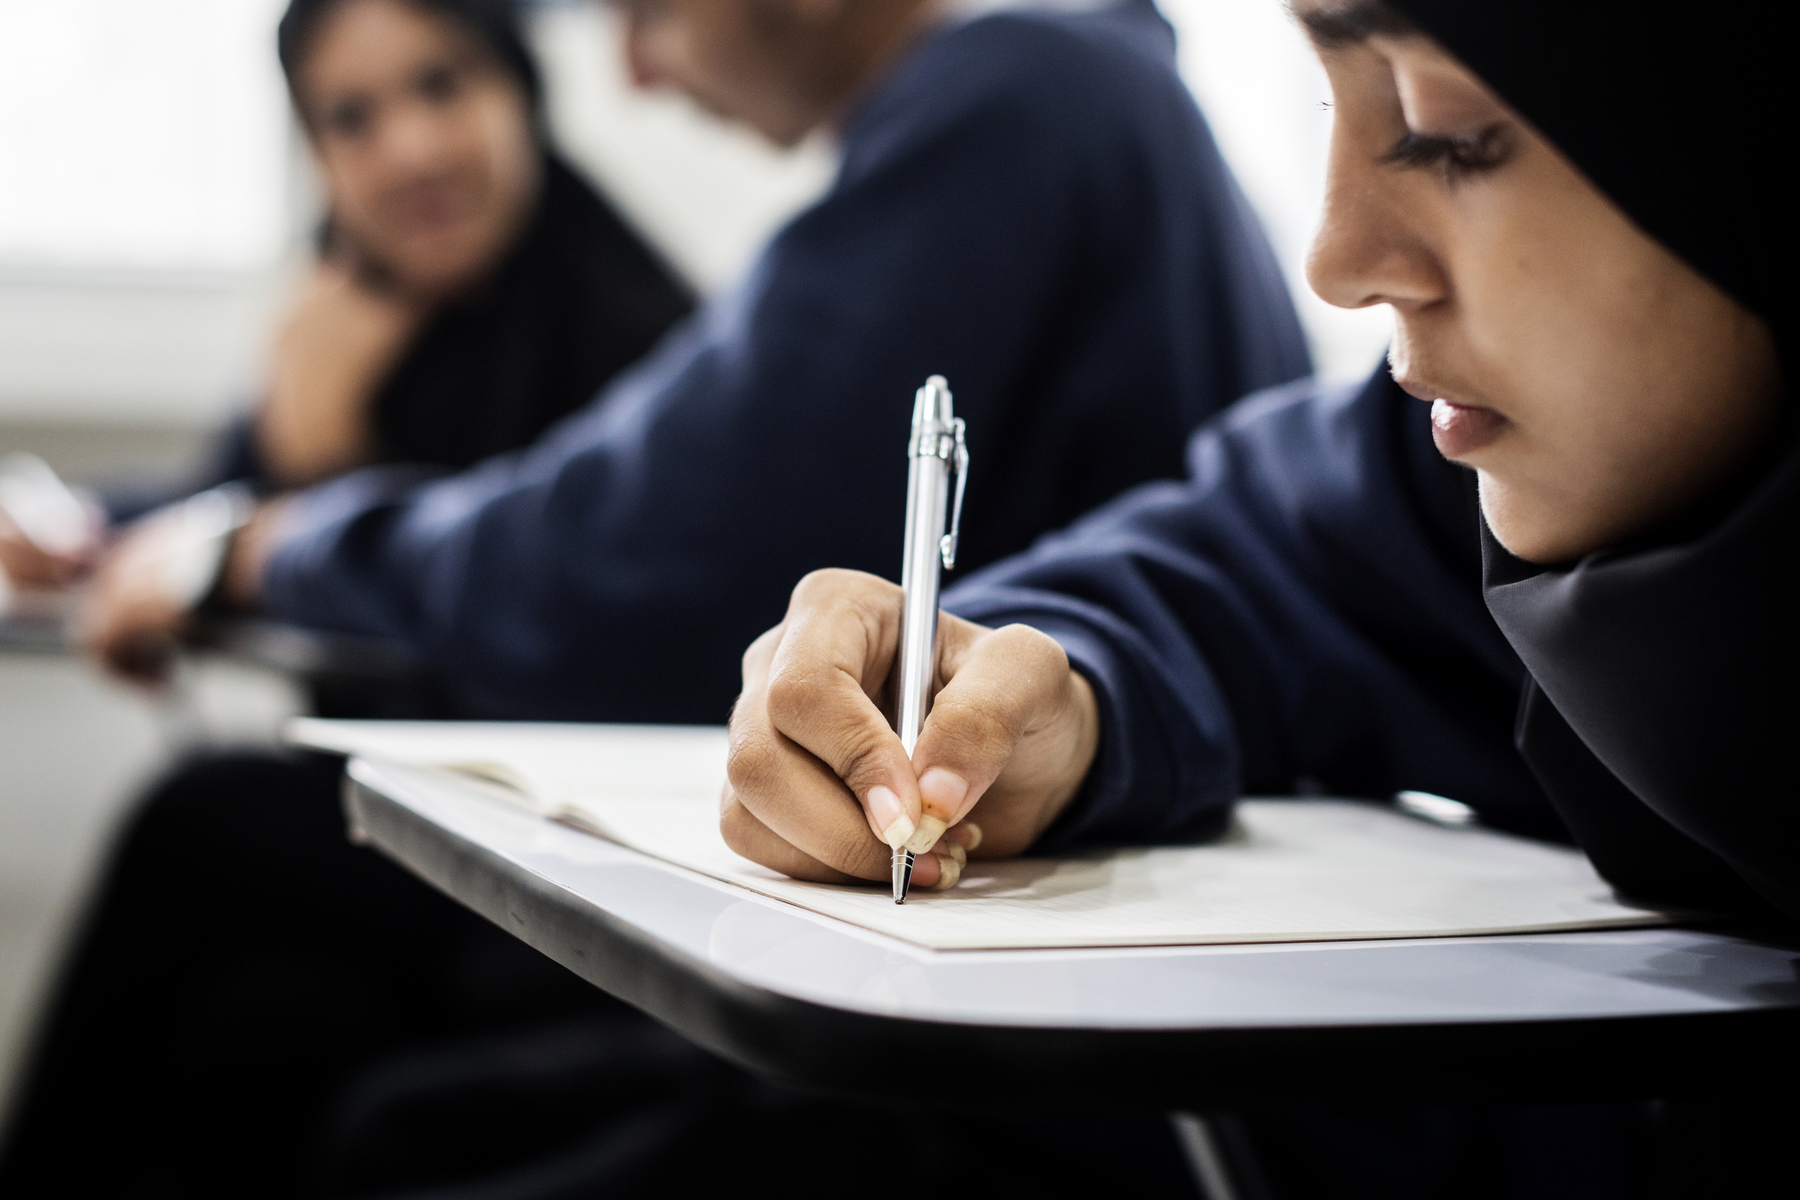 State schools in the UAE